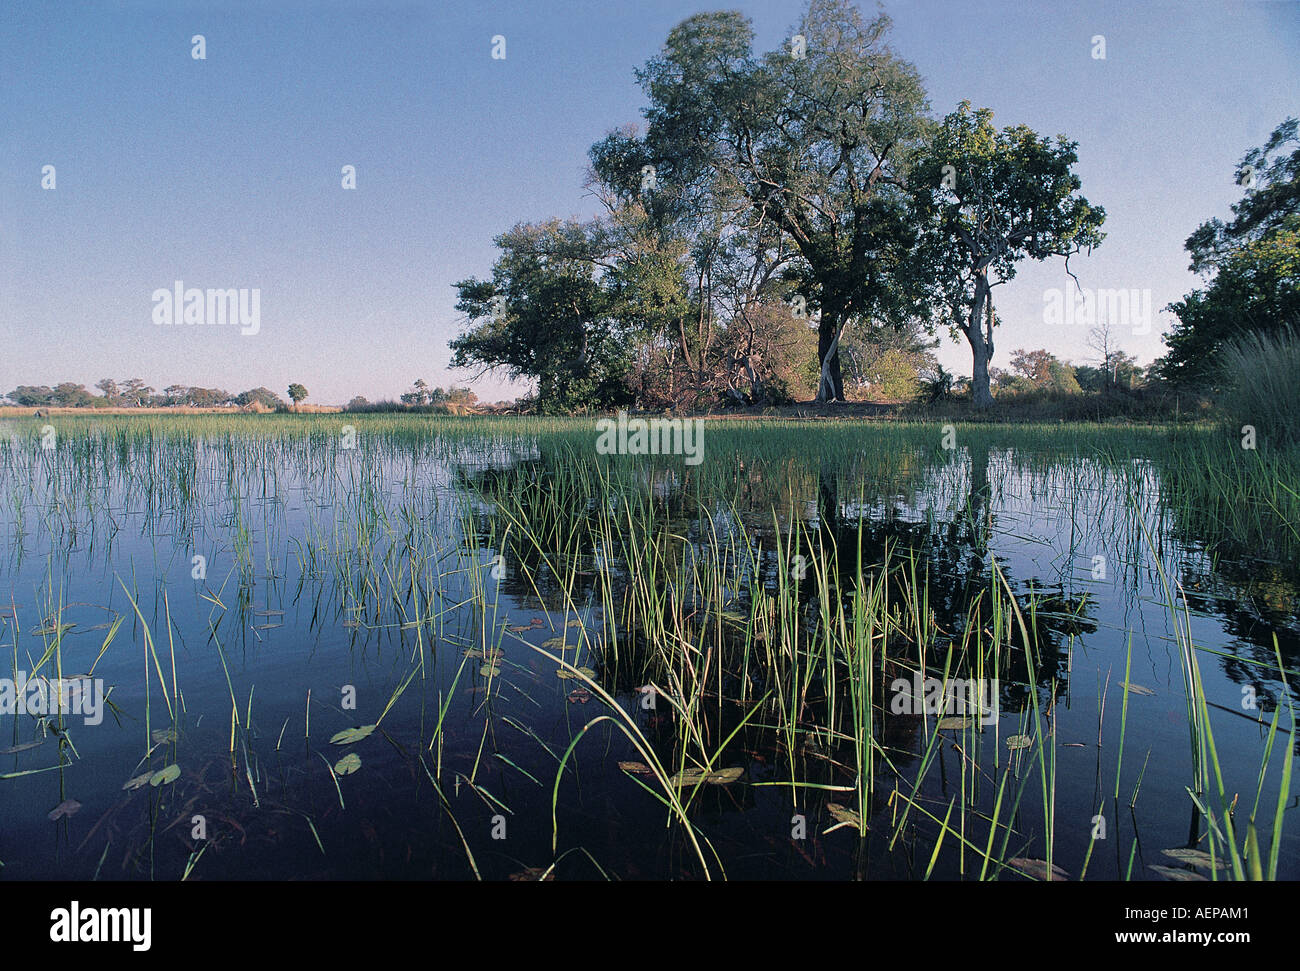 A beautiful water scape of still water reeds and trees near Chief s Island in the Okavango Delta Botswana southern Africa - Stock Image